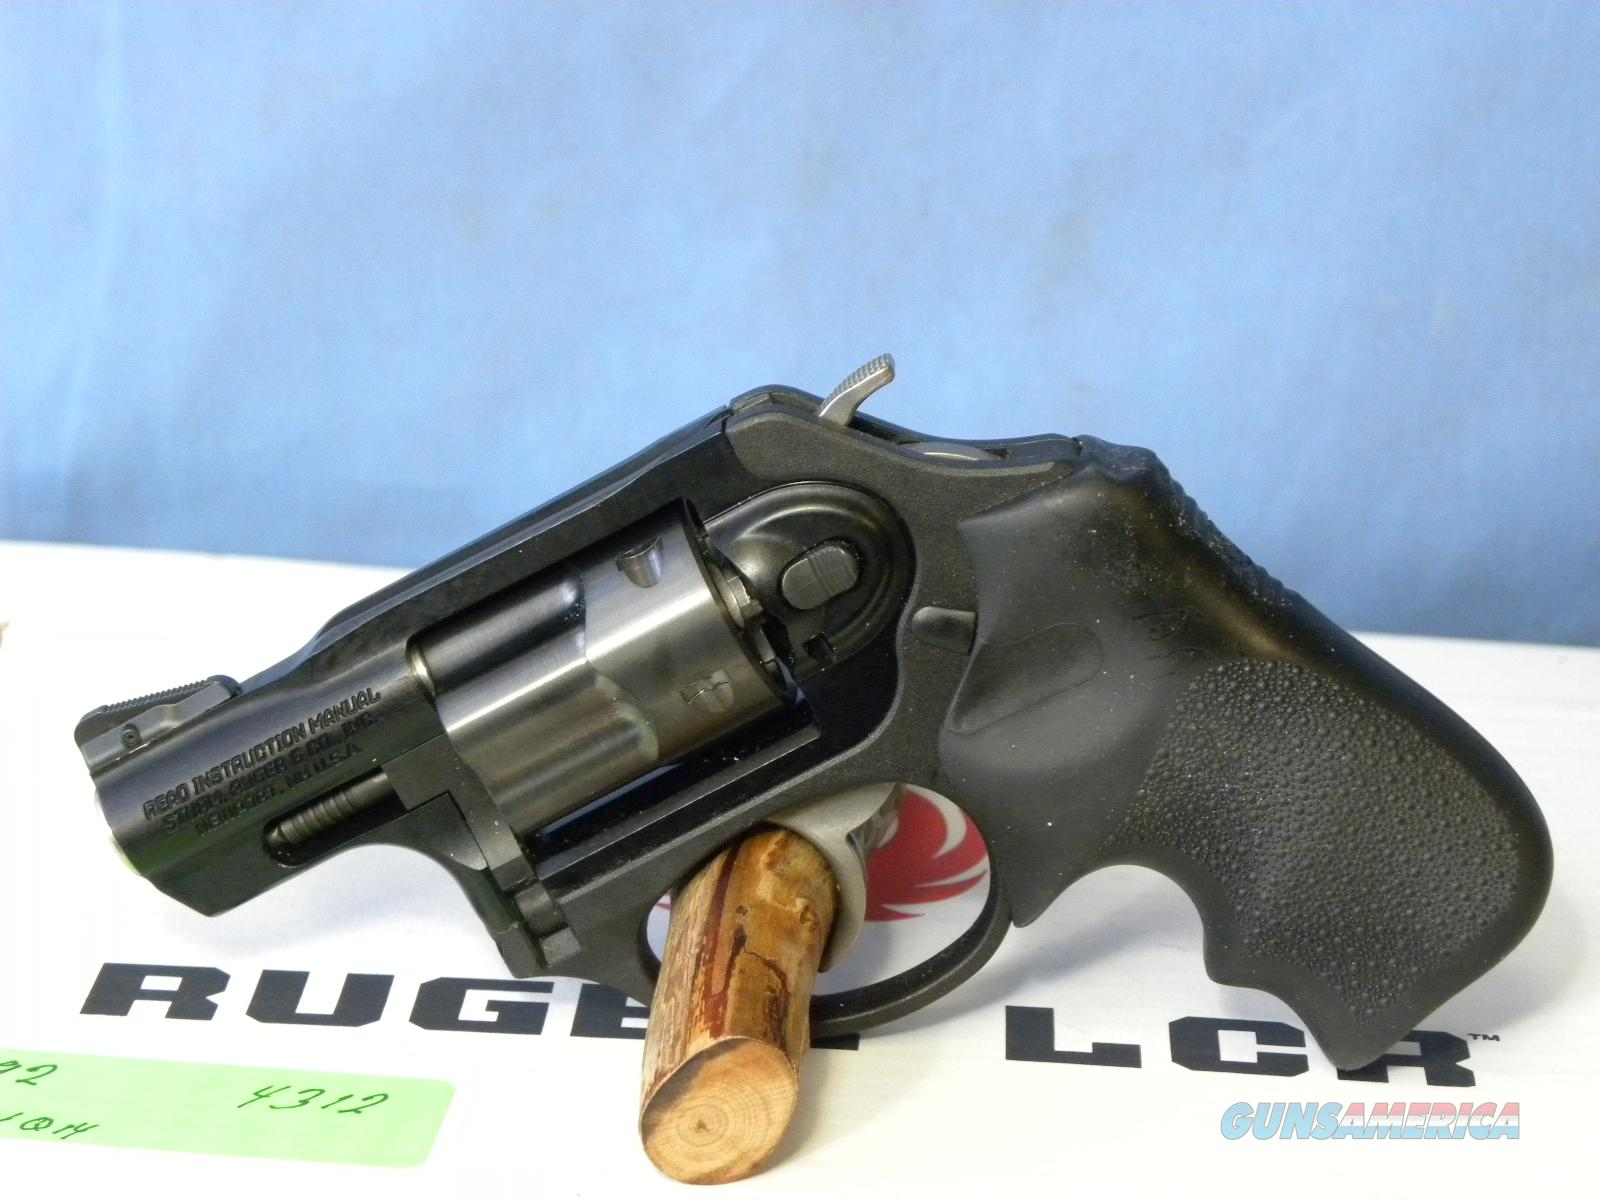 Ruger LCRX 5430  Guns > Pistols > Ruger Double Action Revolver > LCR